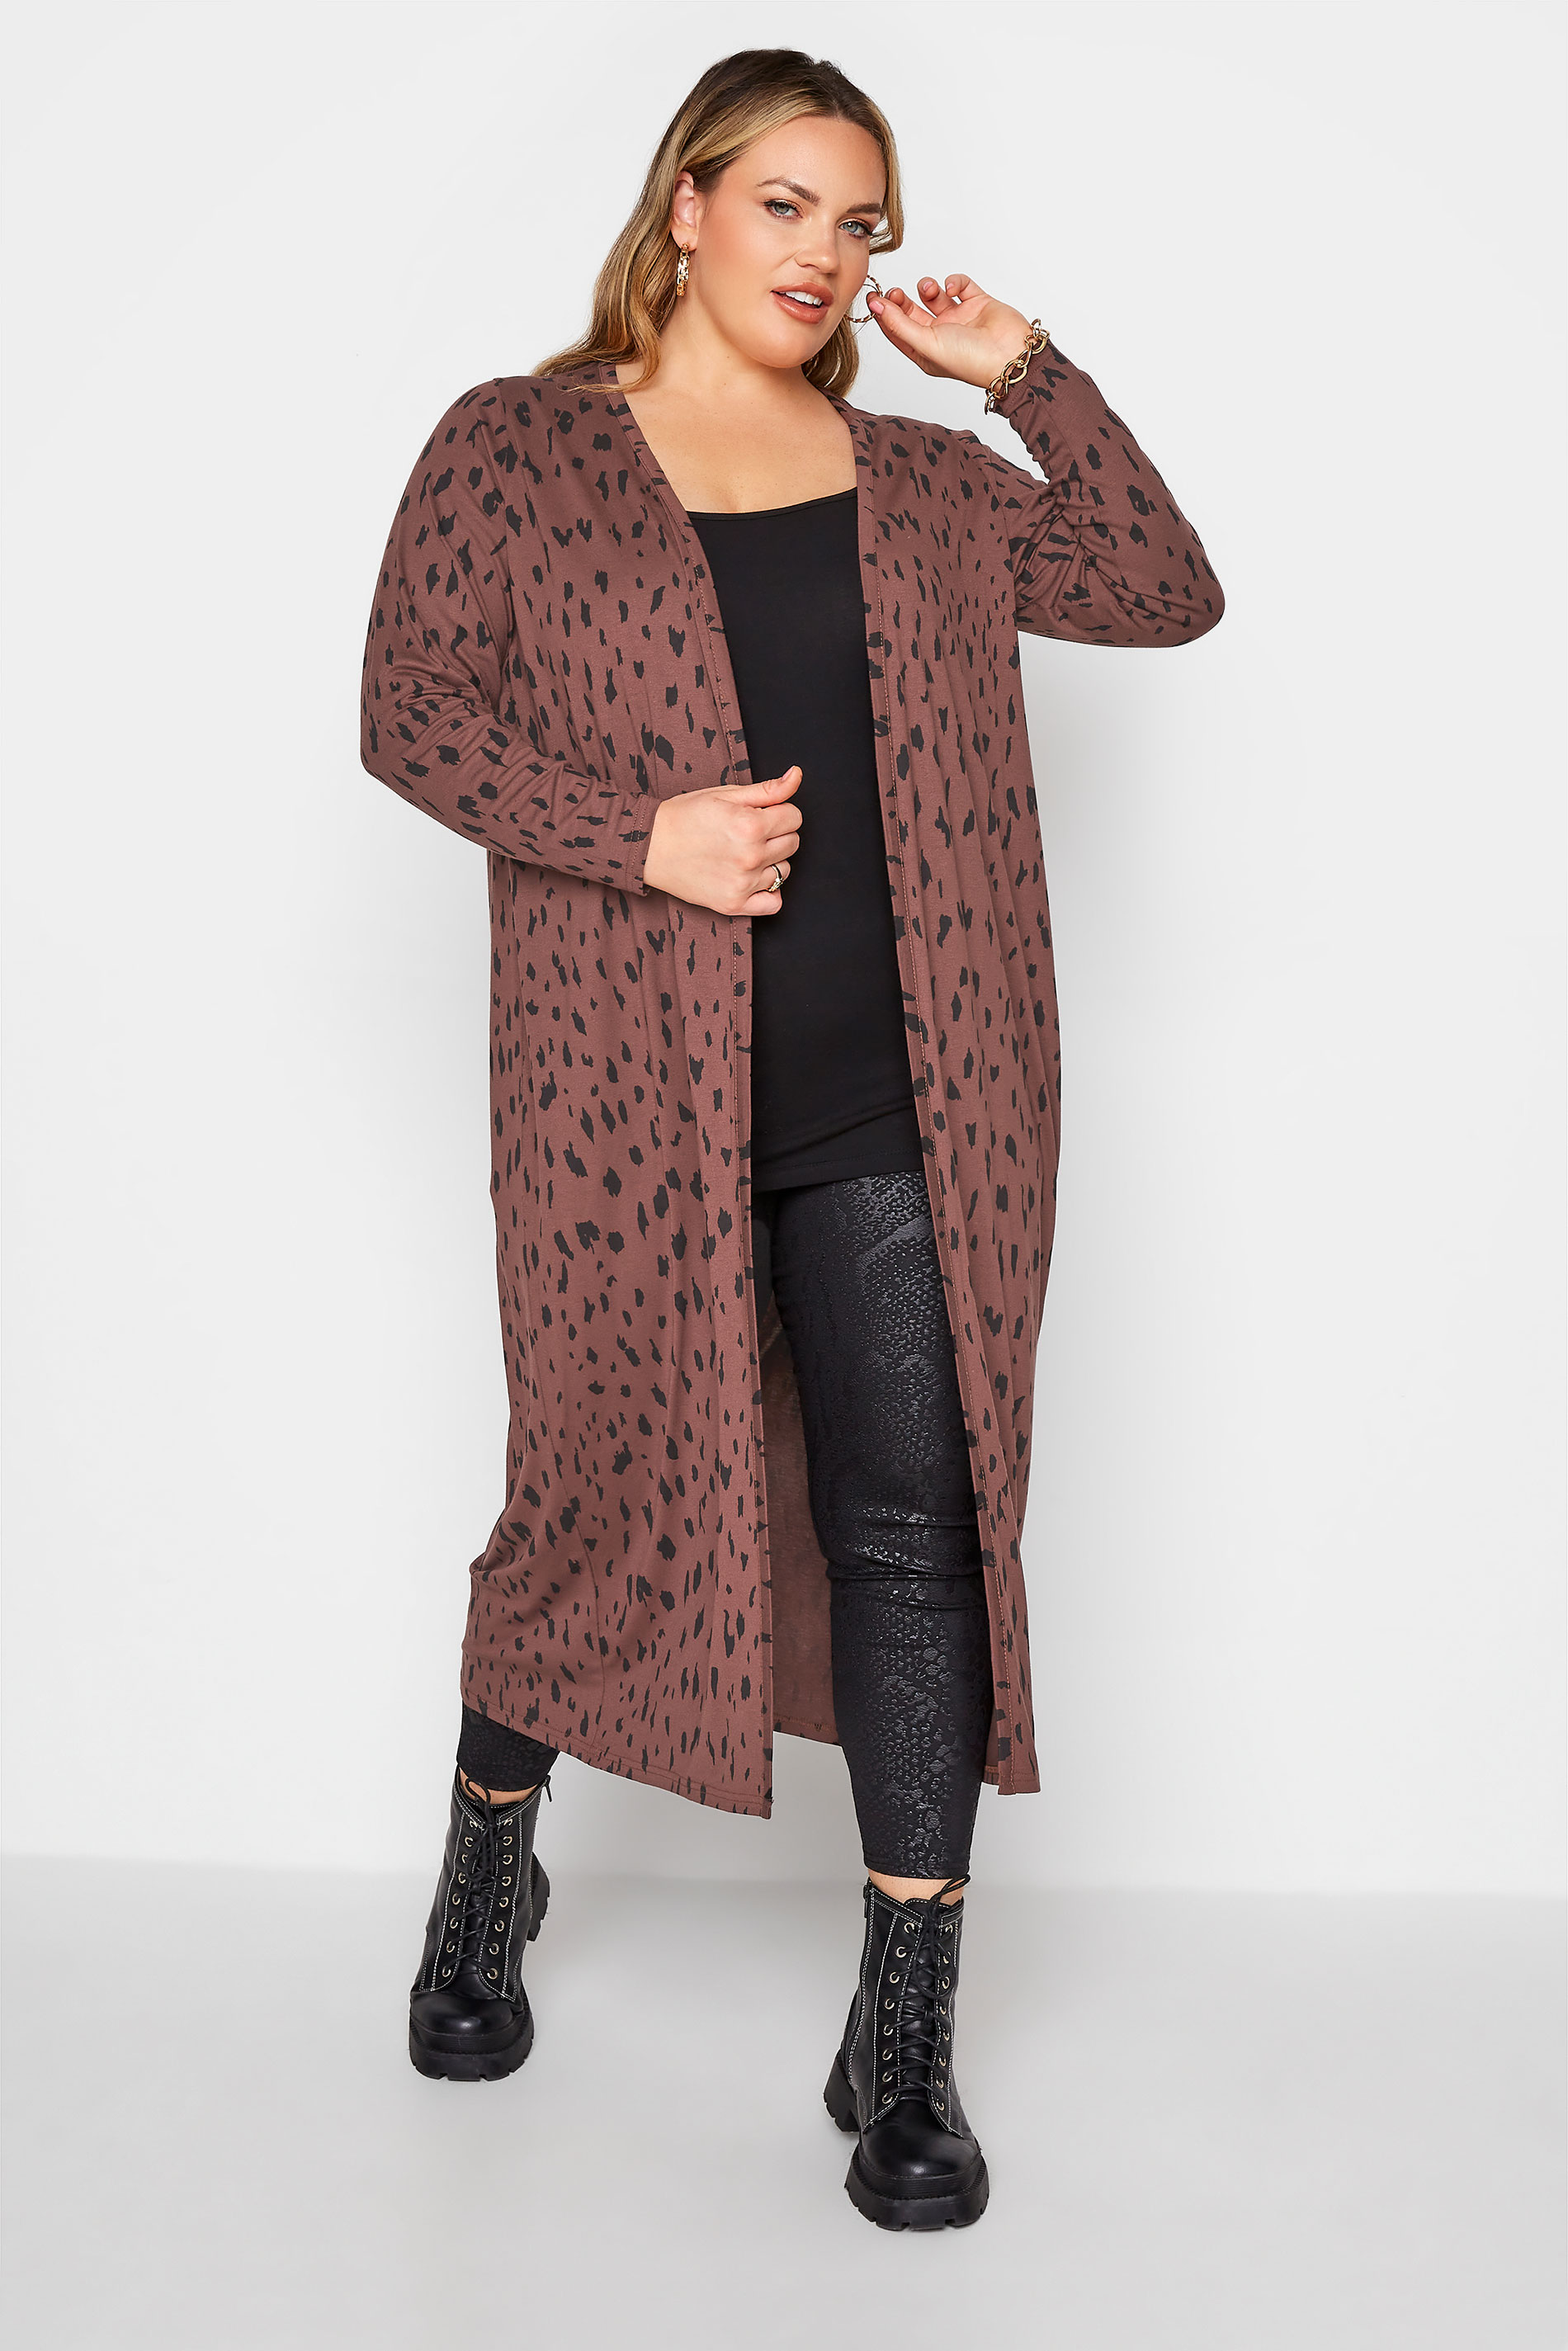 LIMITED COLLECTION Brown Animal Marking Longline Cardigan_A.jpg